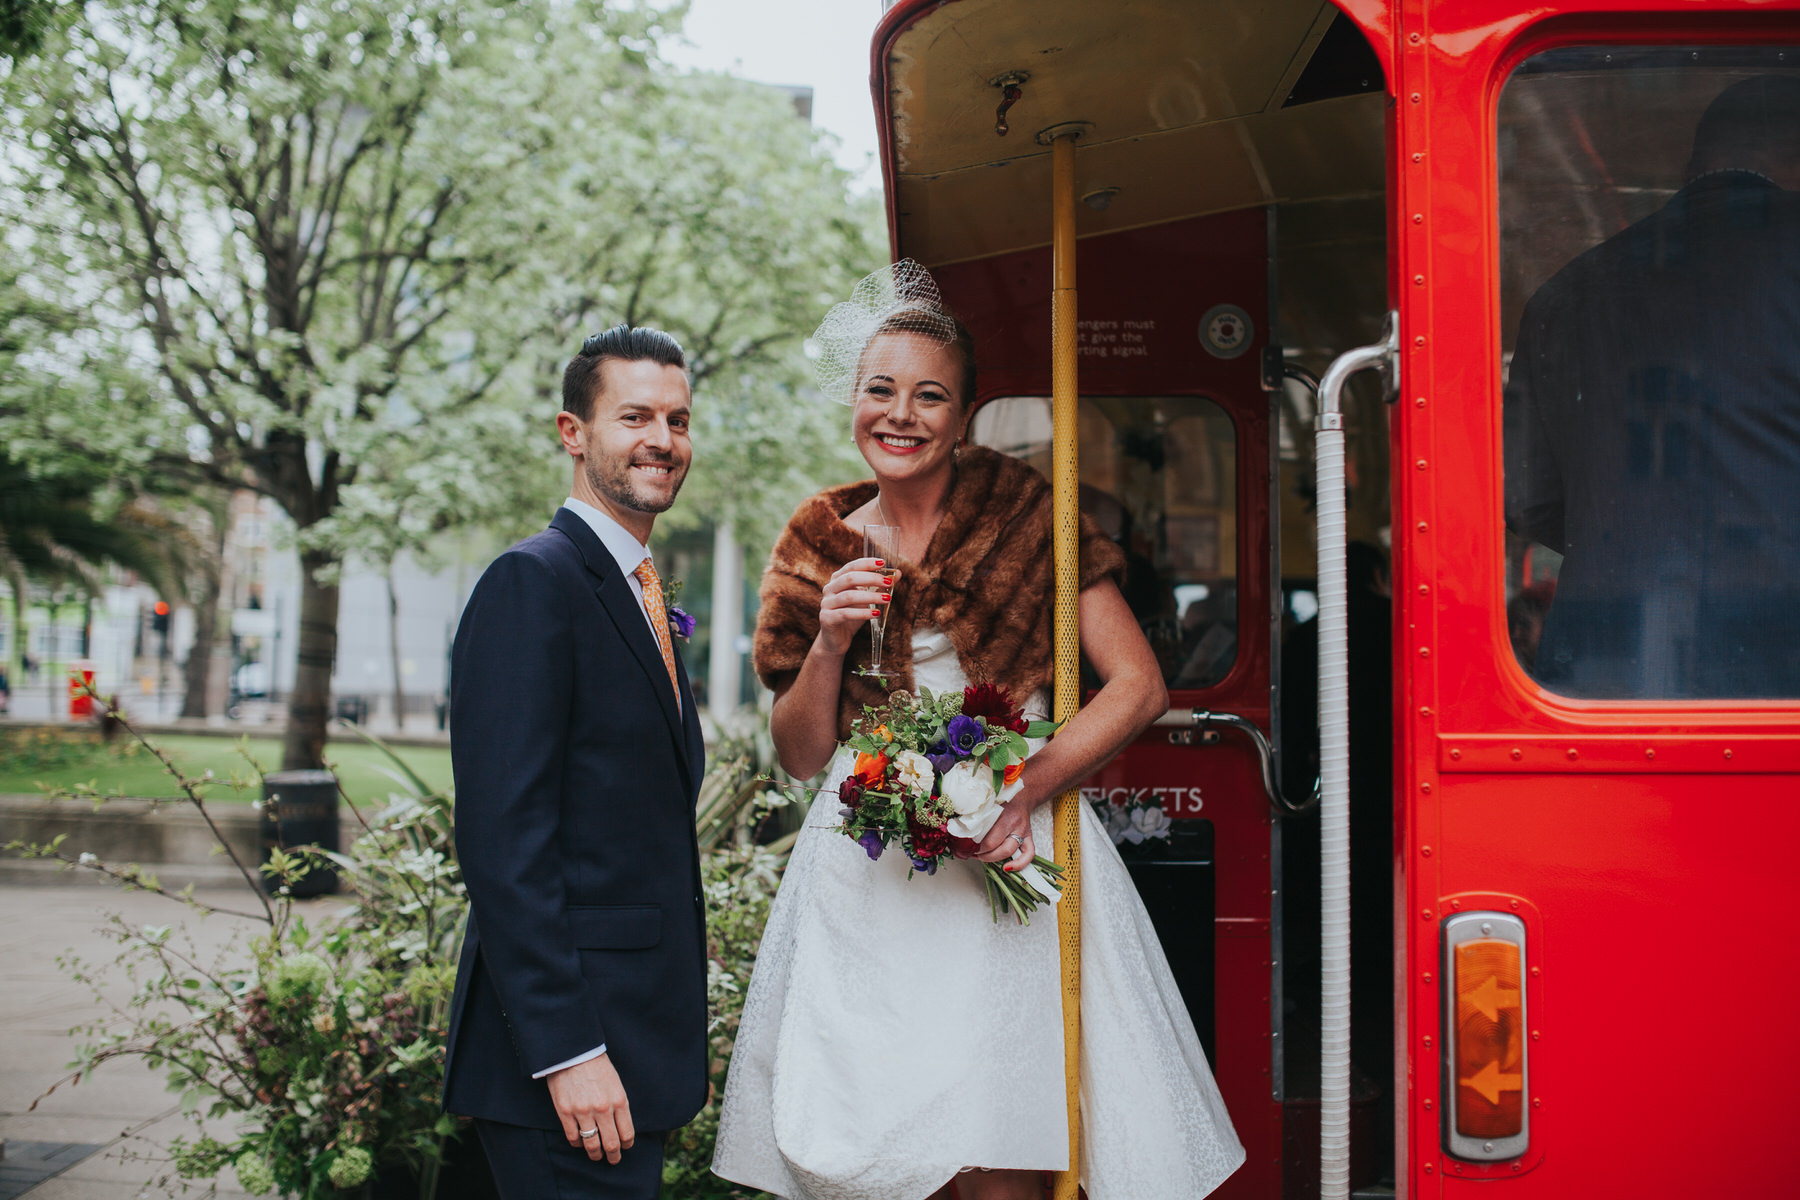 MS-Londesborough-Pub-wedding-Hackney-alternative-photographer-144-newly-married-bride-groom-drinking-bubbly-red-london-wedding-bus.jpg